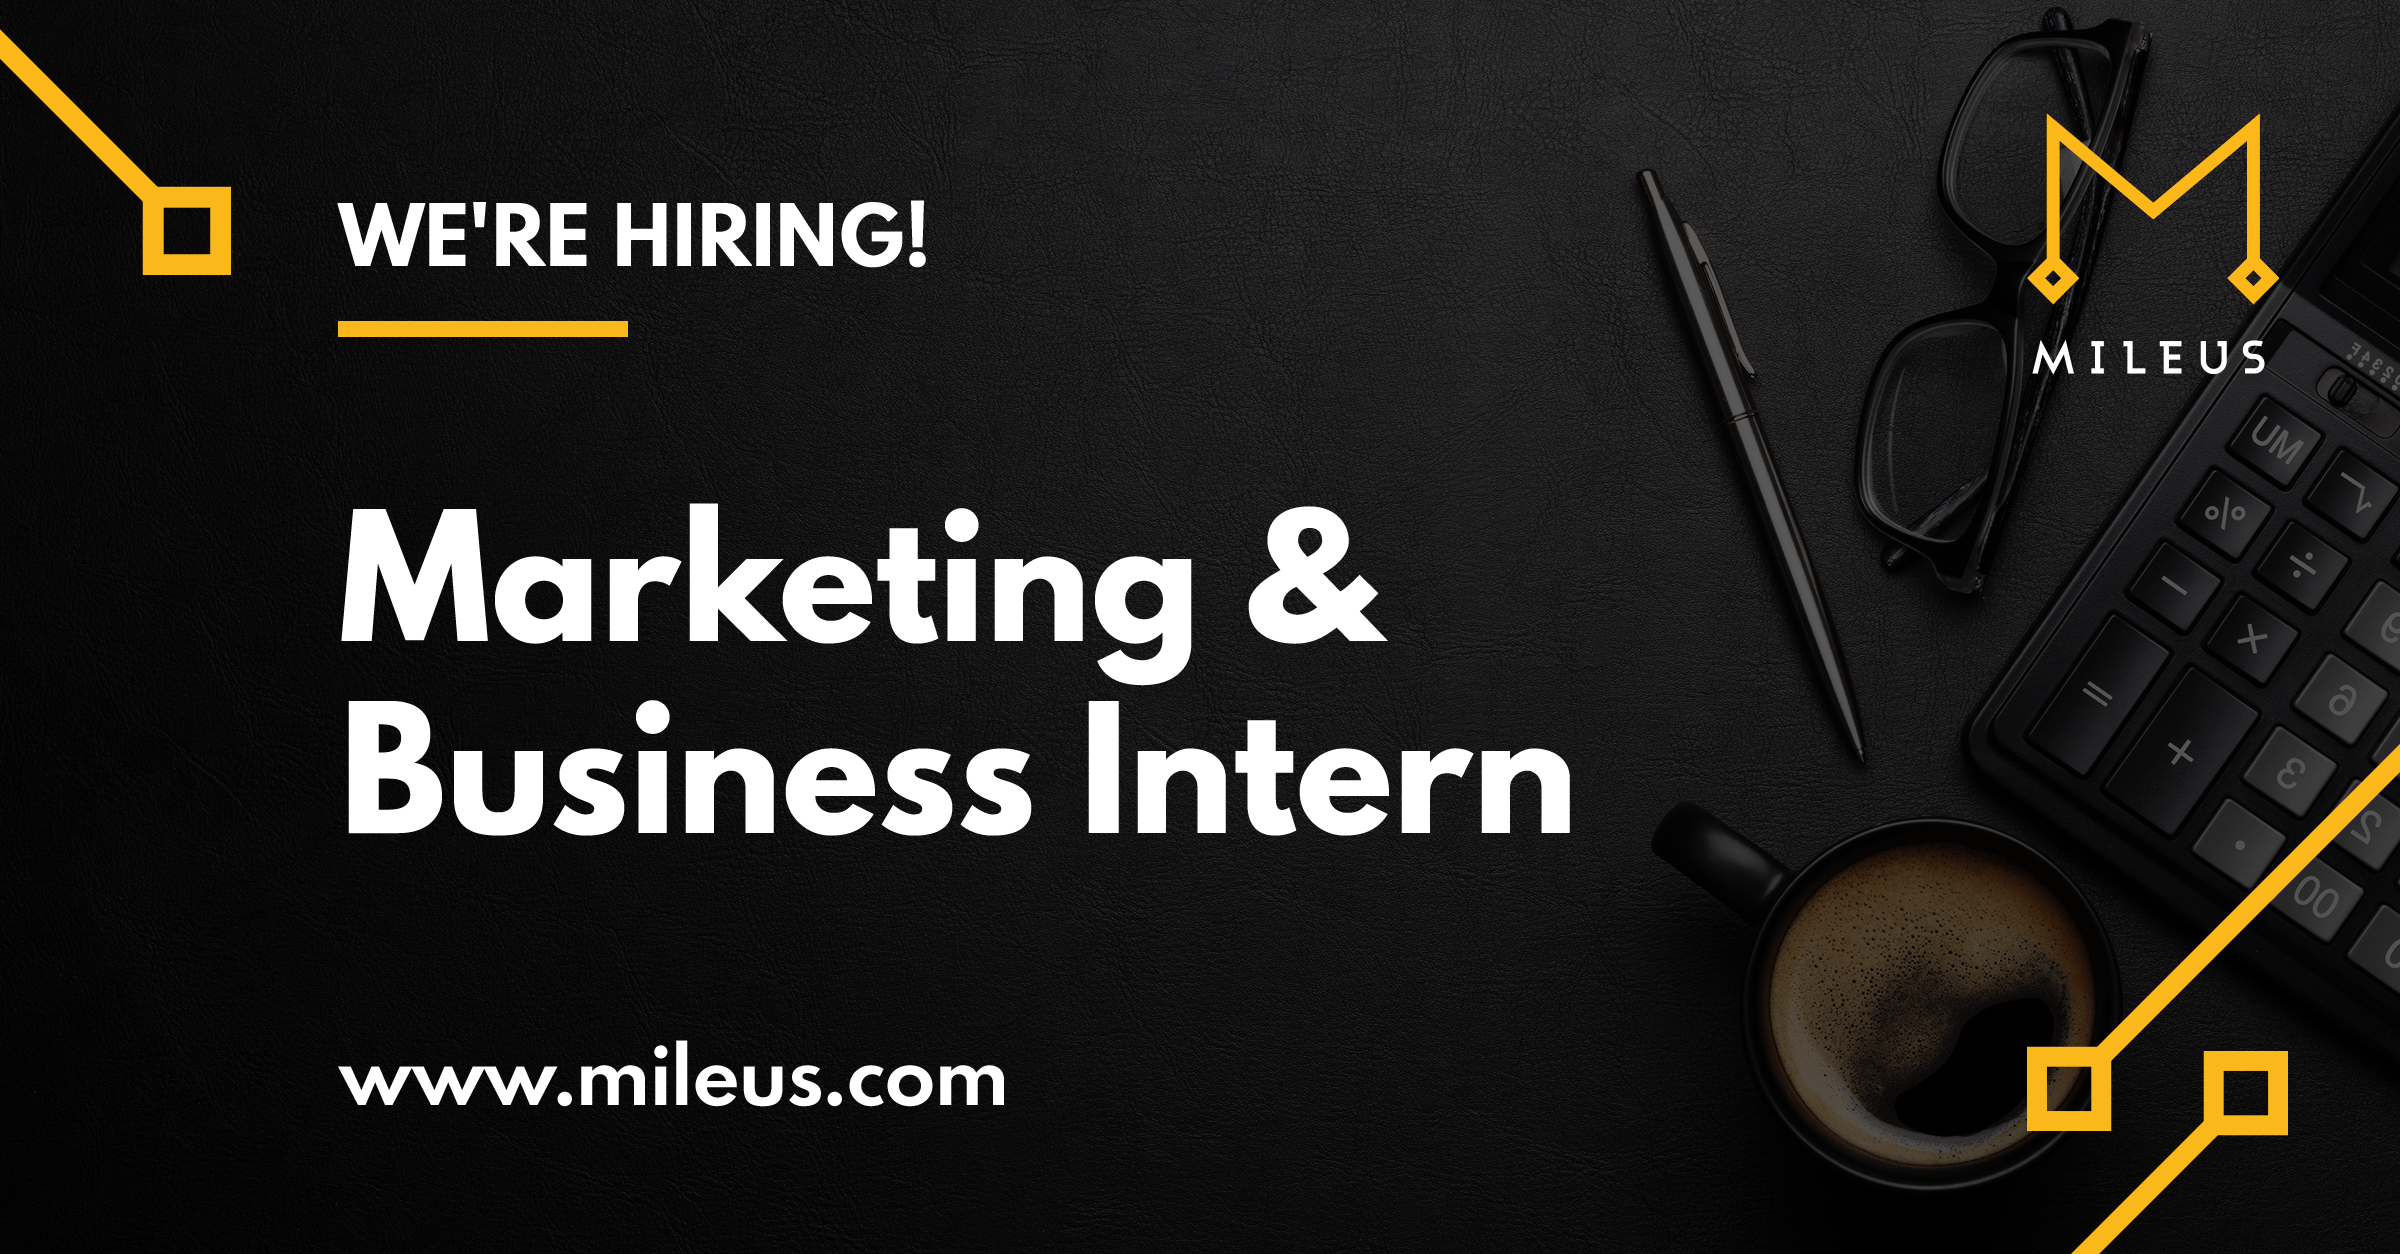 Hiring graphic image for the role of marketing & business intern